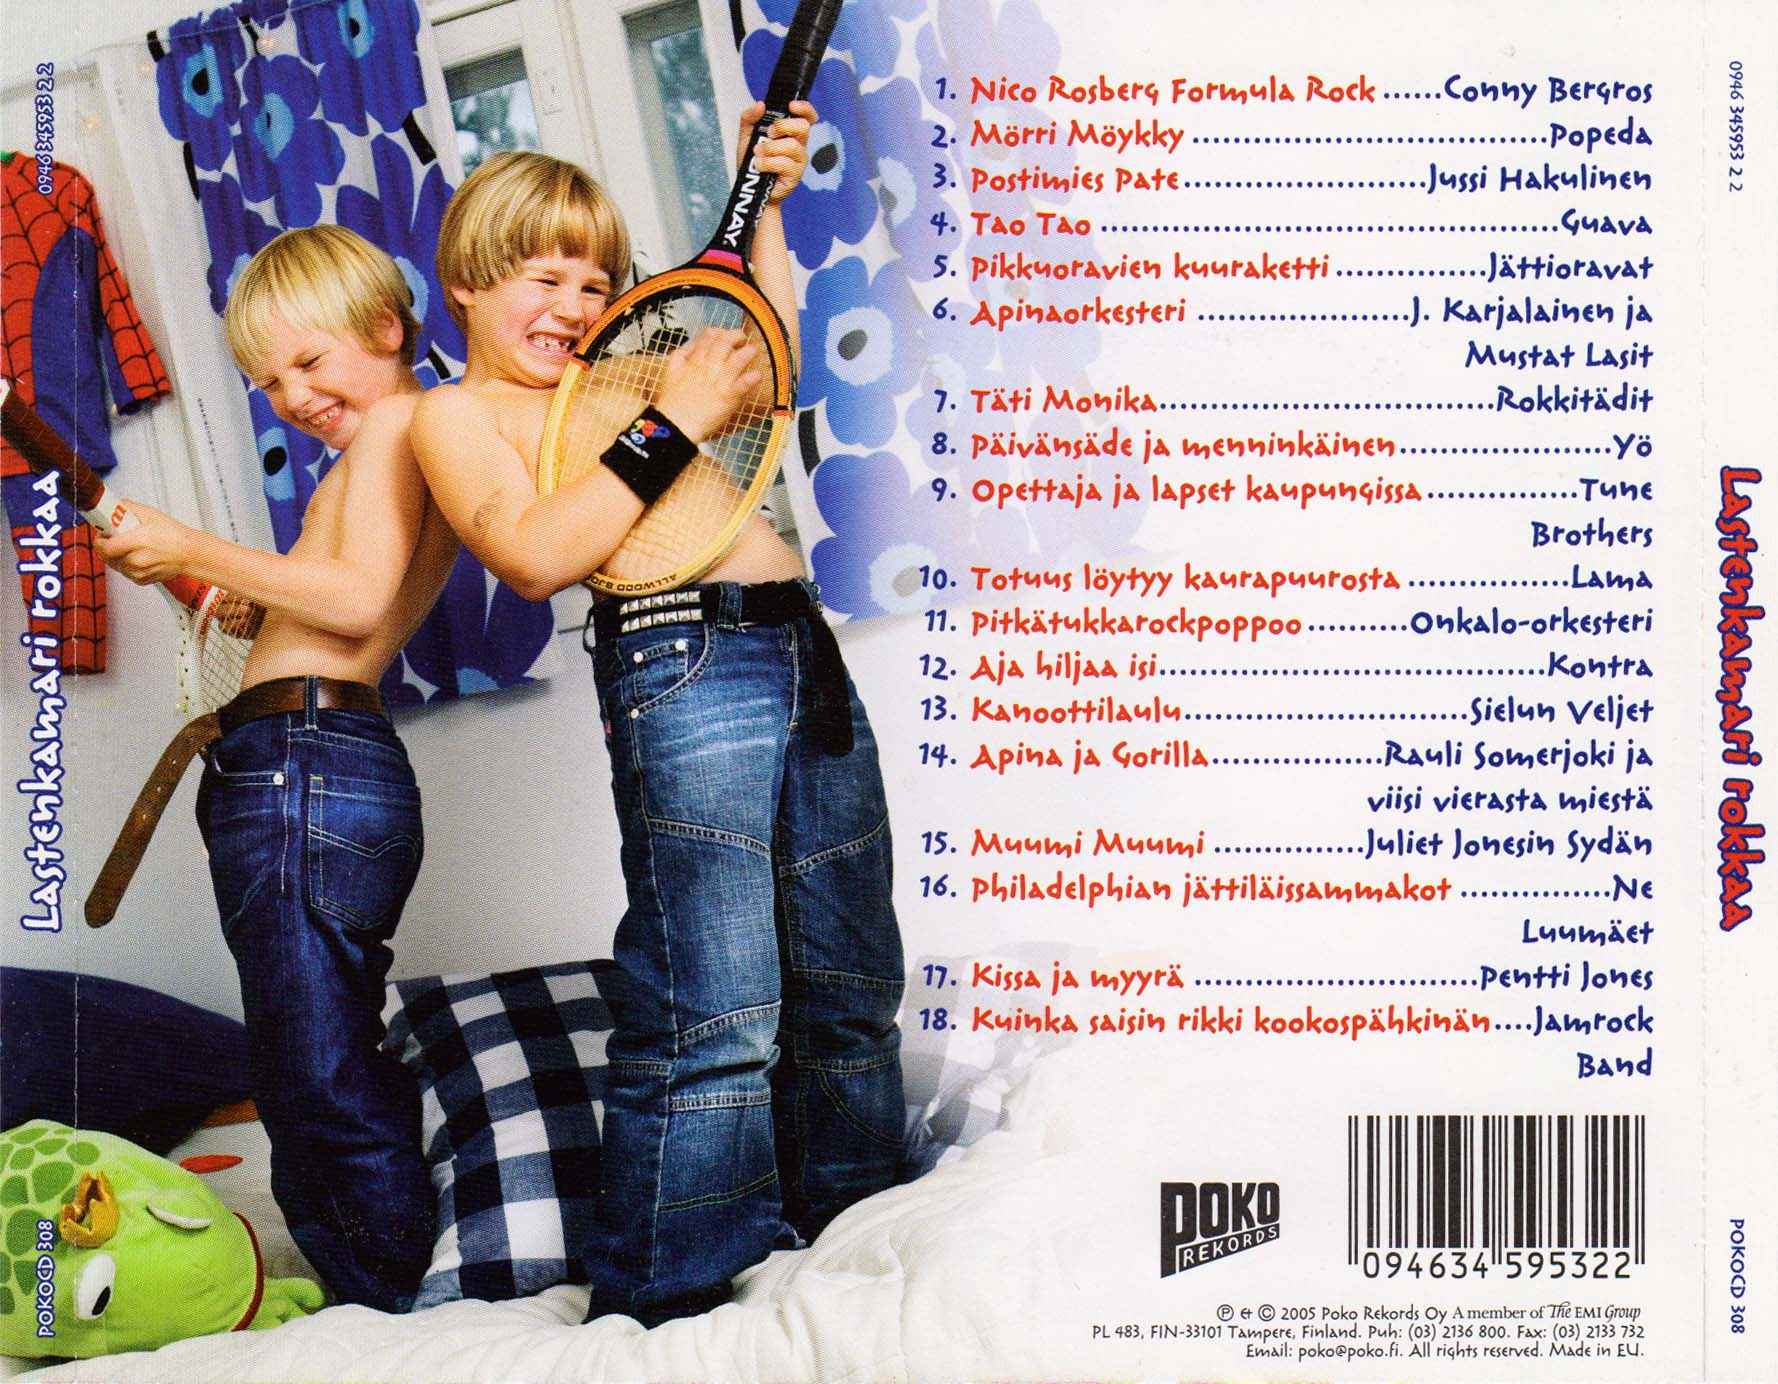 andy mccoy mustalainen live sex suomi